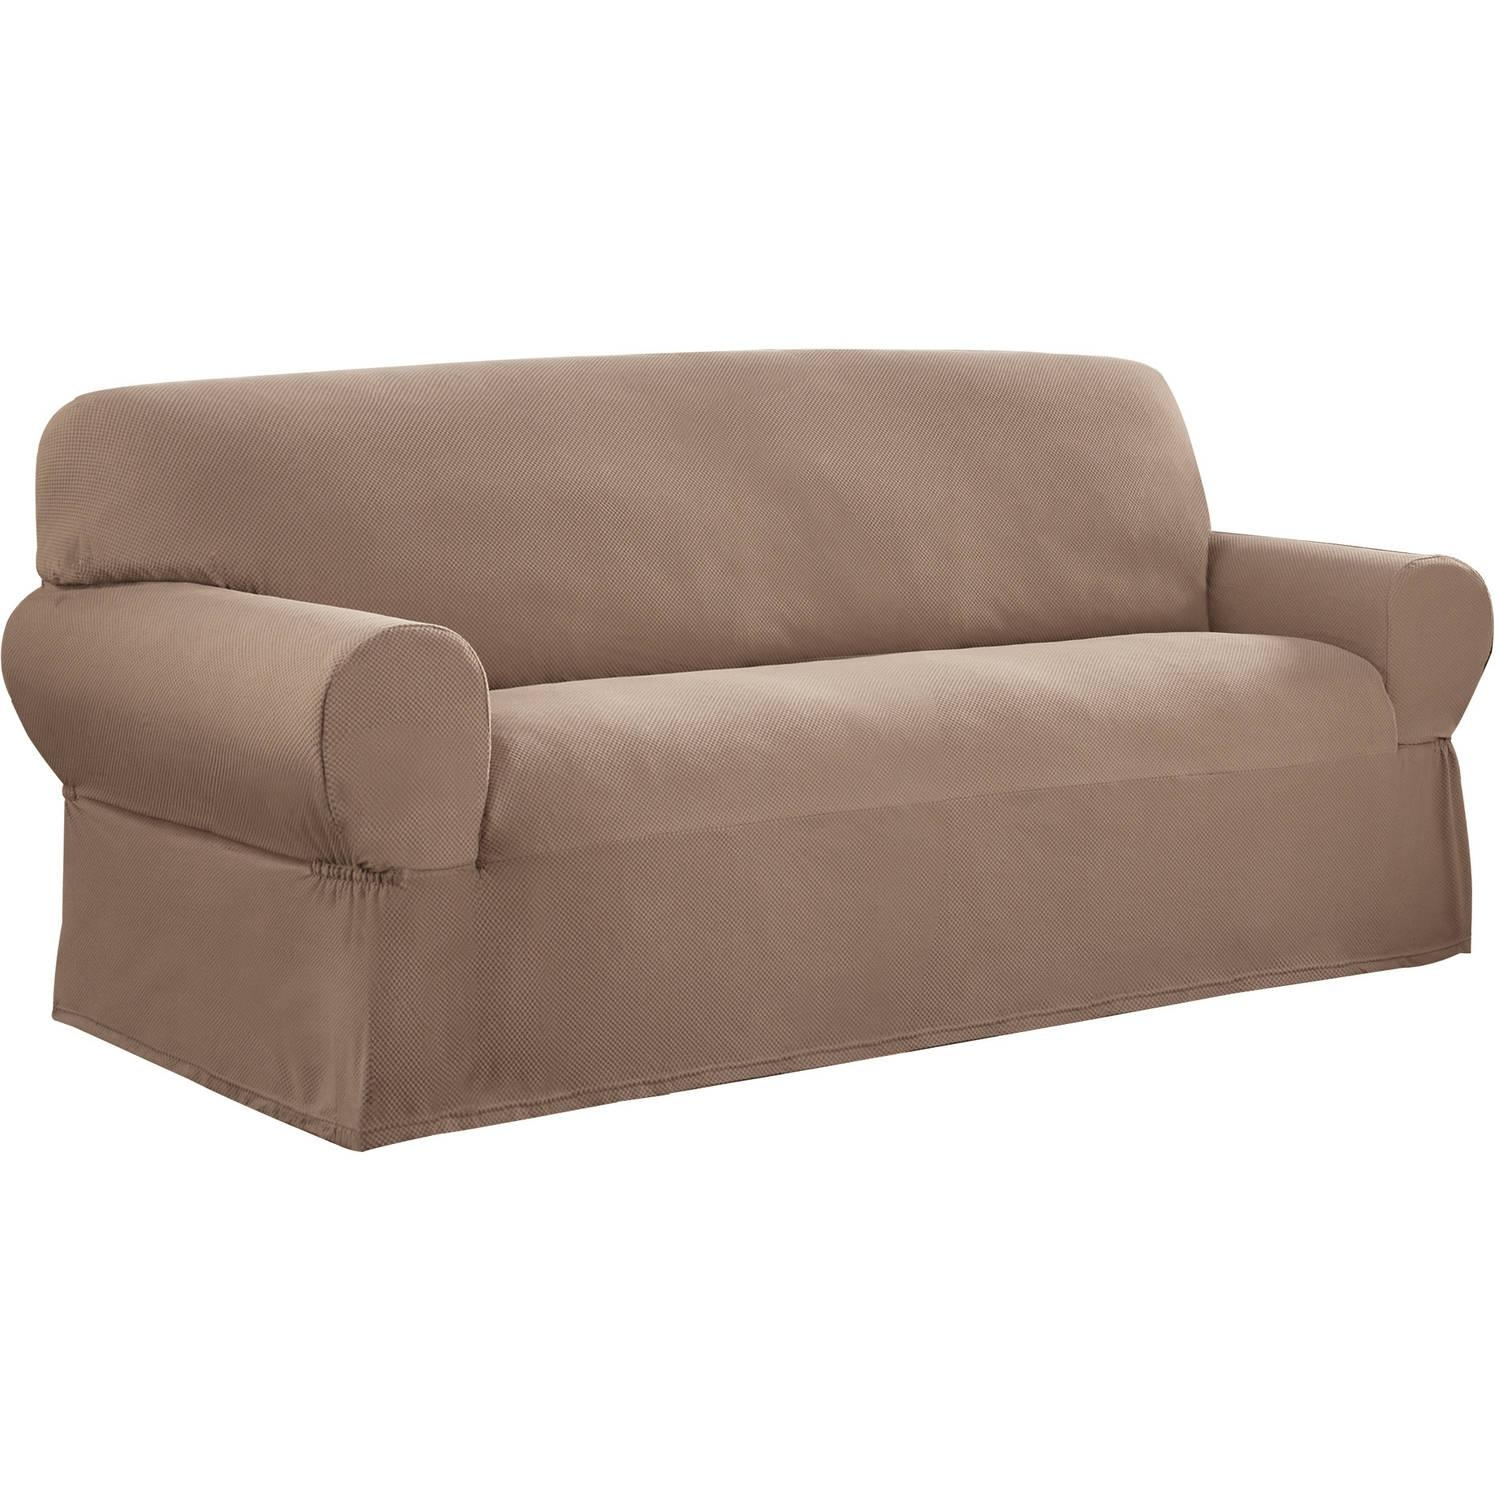 Slipcovers – Walmart With Armchair Armrest Covers (Image 12 of 20)